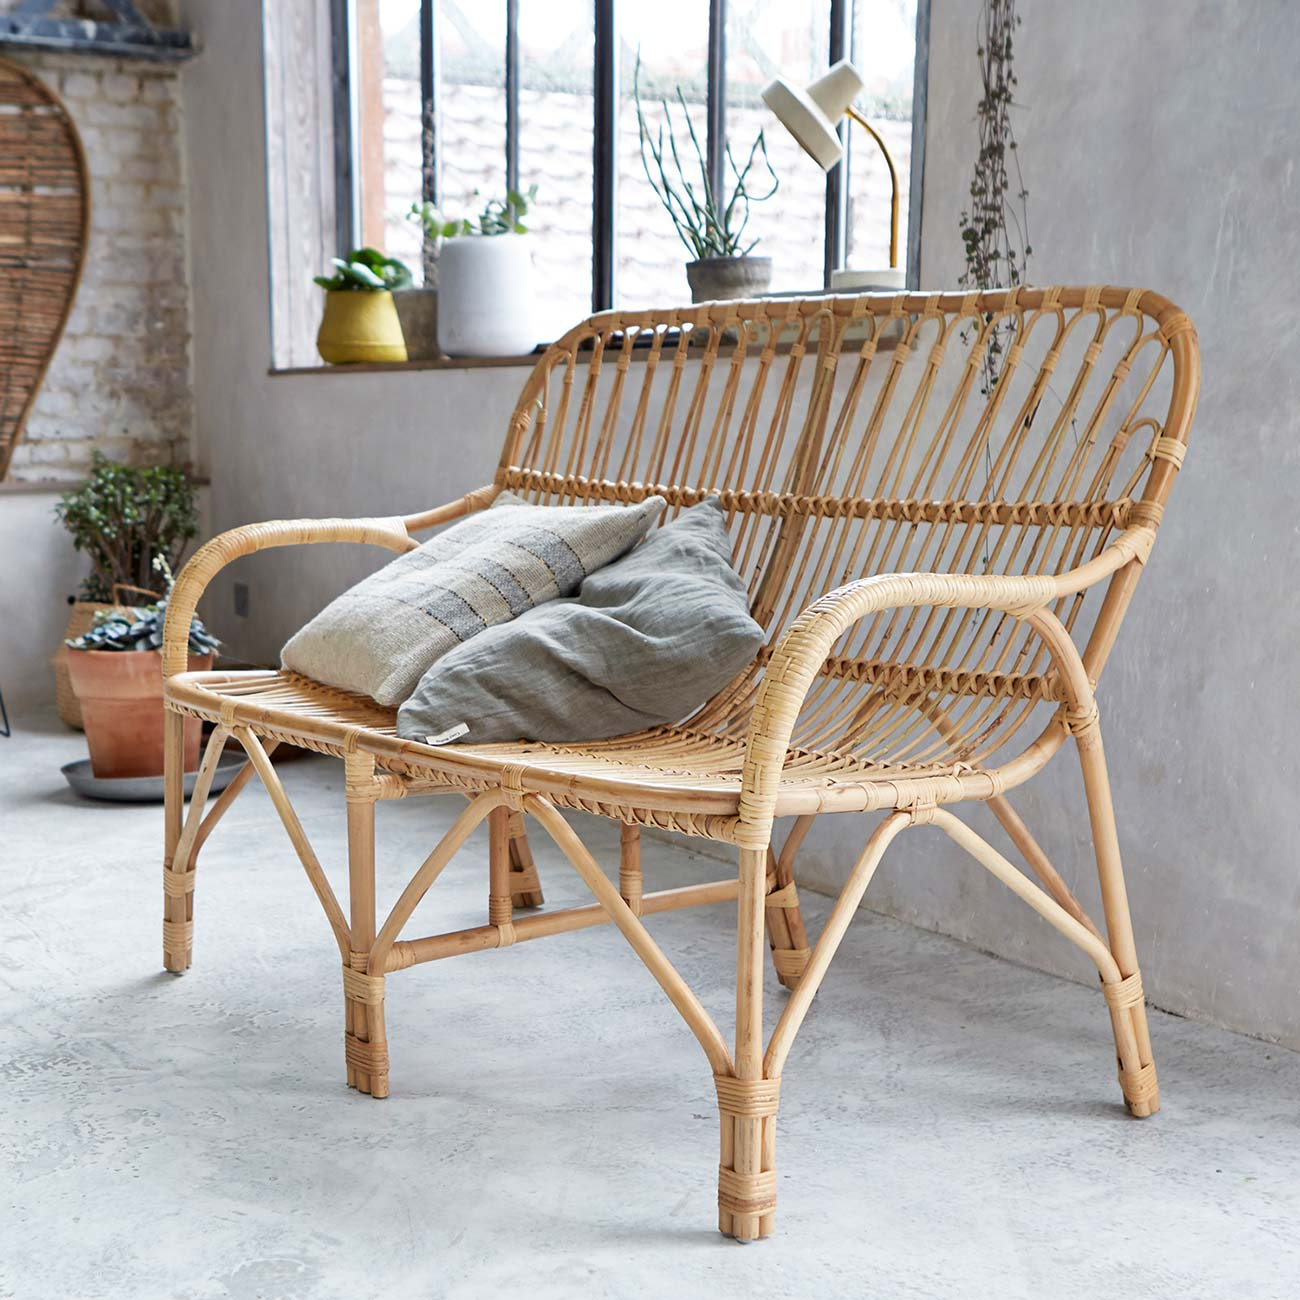 """Trends Mag #18 – """"Out is In""""  Garden furniture comes indoors"""